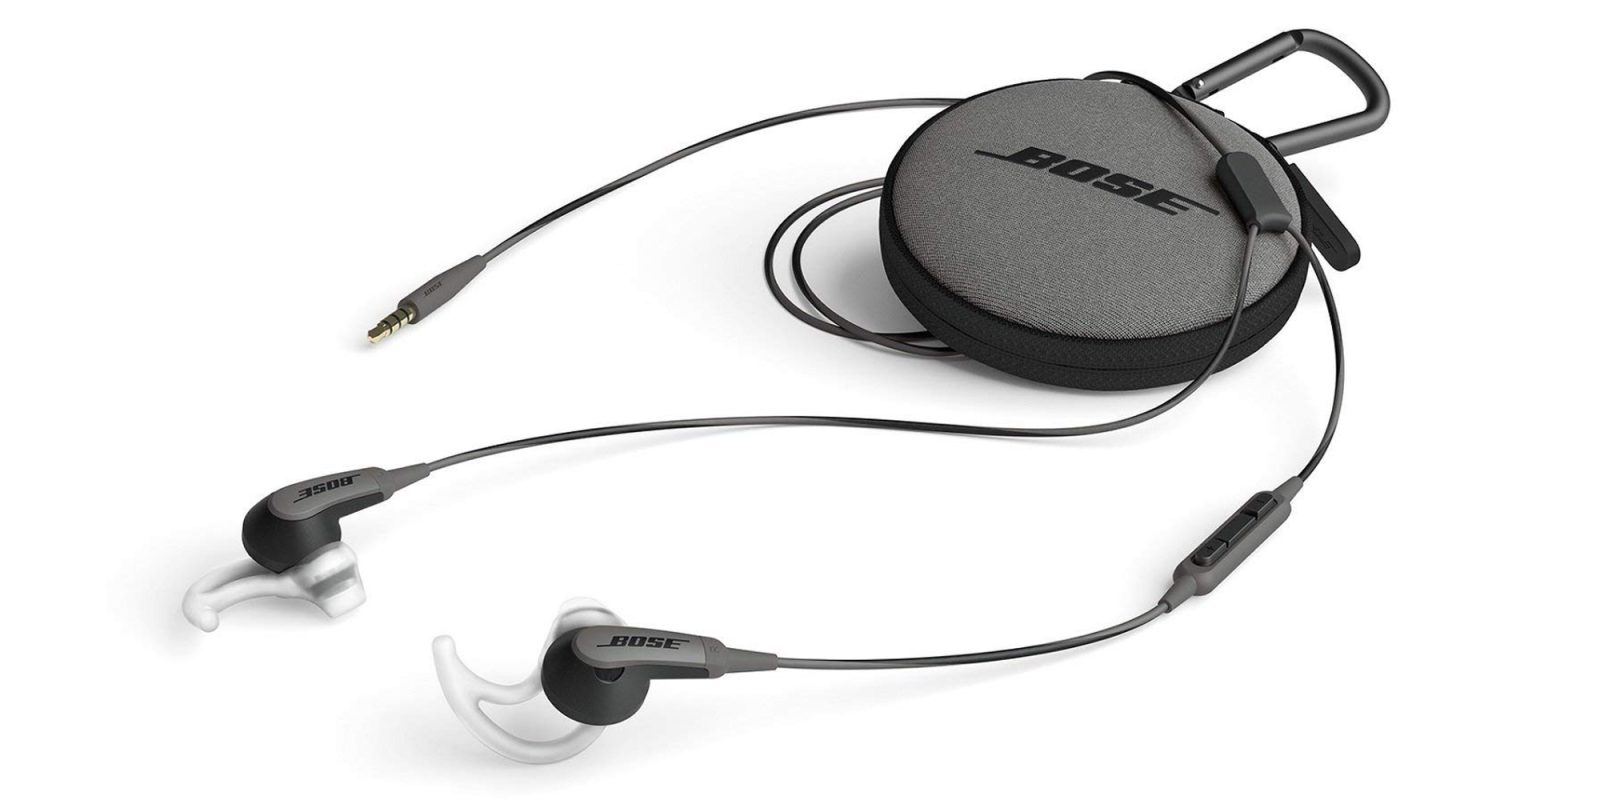 Bose's SoundSport iOS In-Ear Headphones are the perfect workout companion: $49 (Reg. $100)